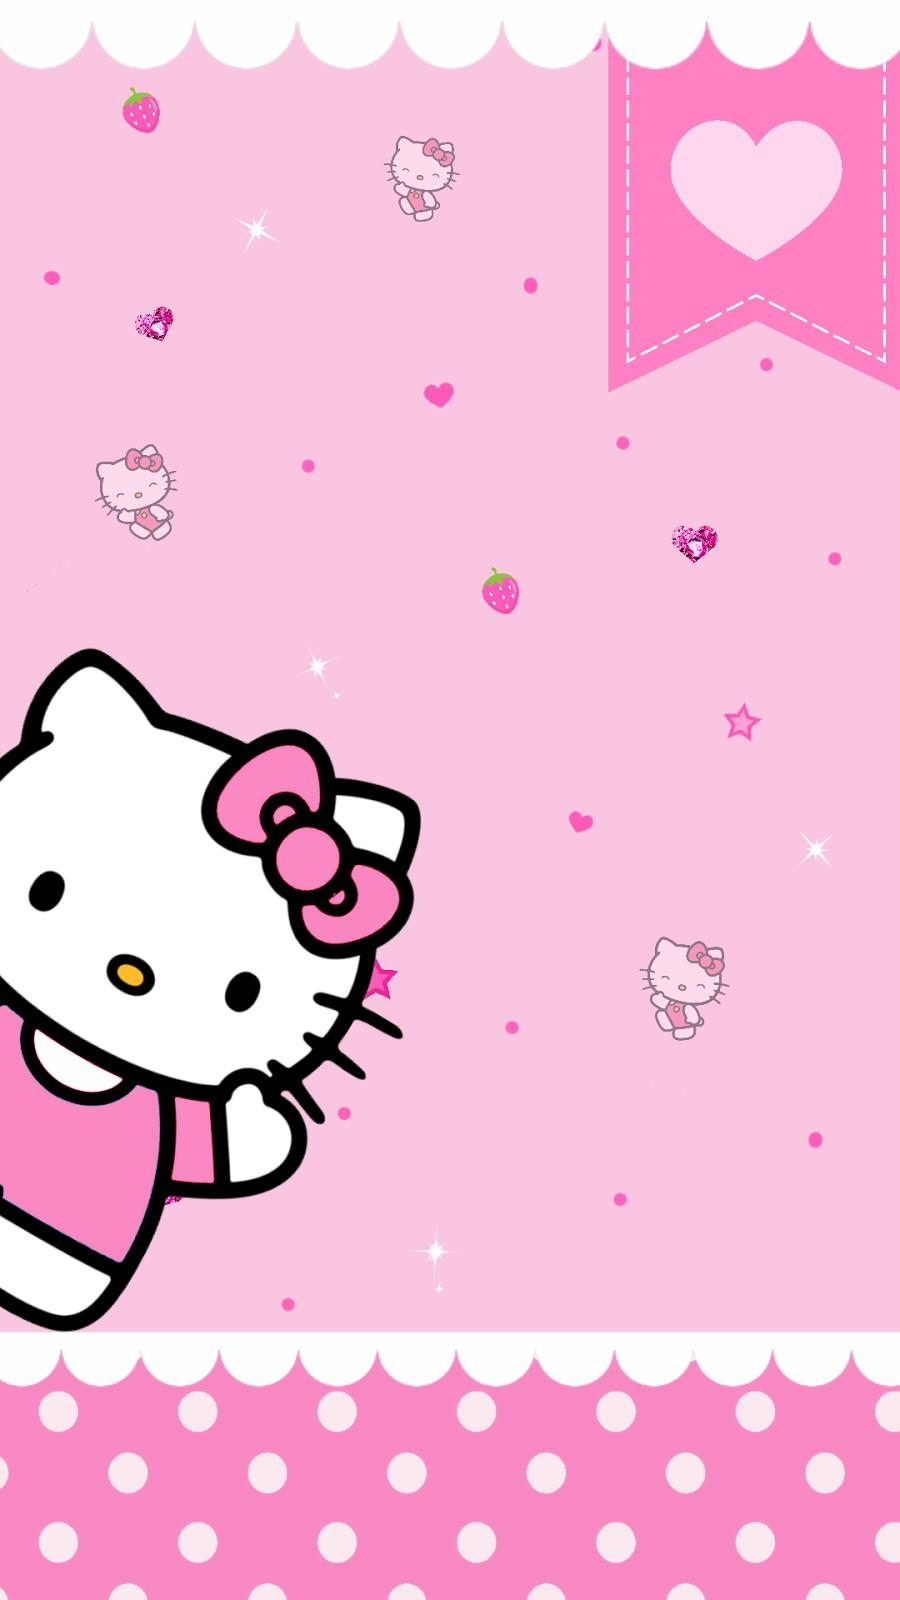 wallpaper hello kitty pinterest | whatsapp| anime| quote| girly